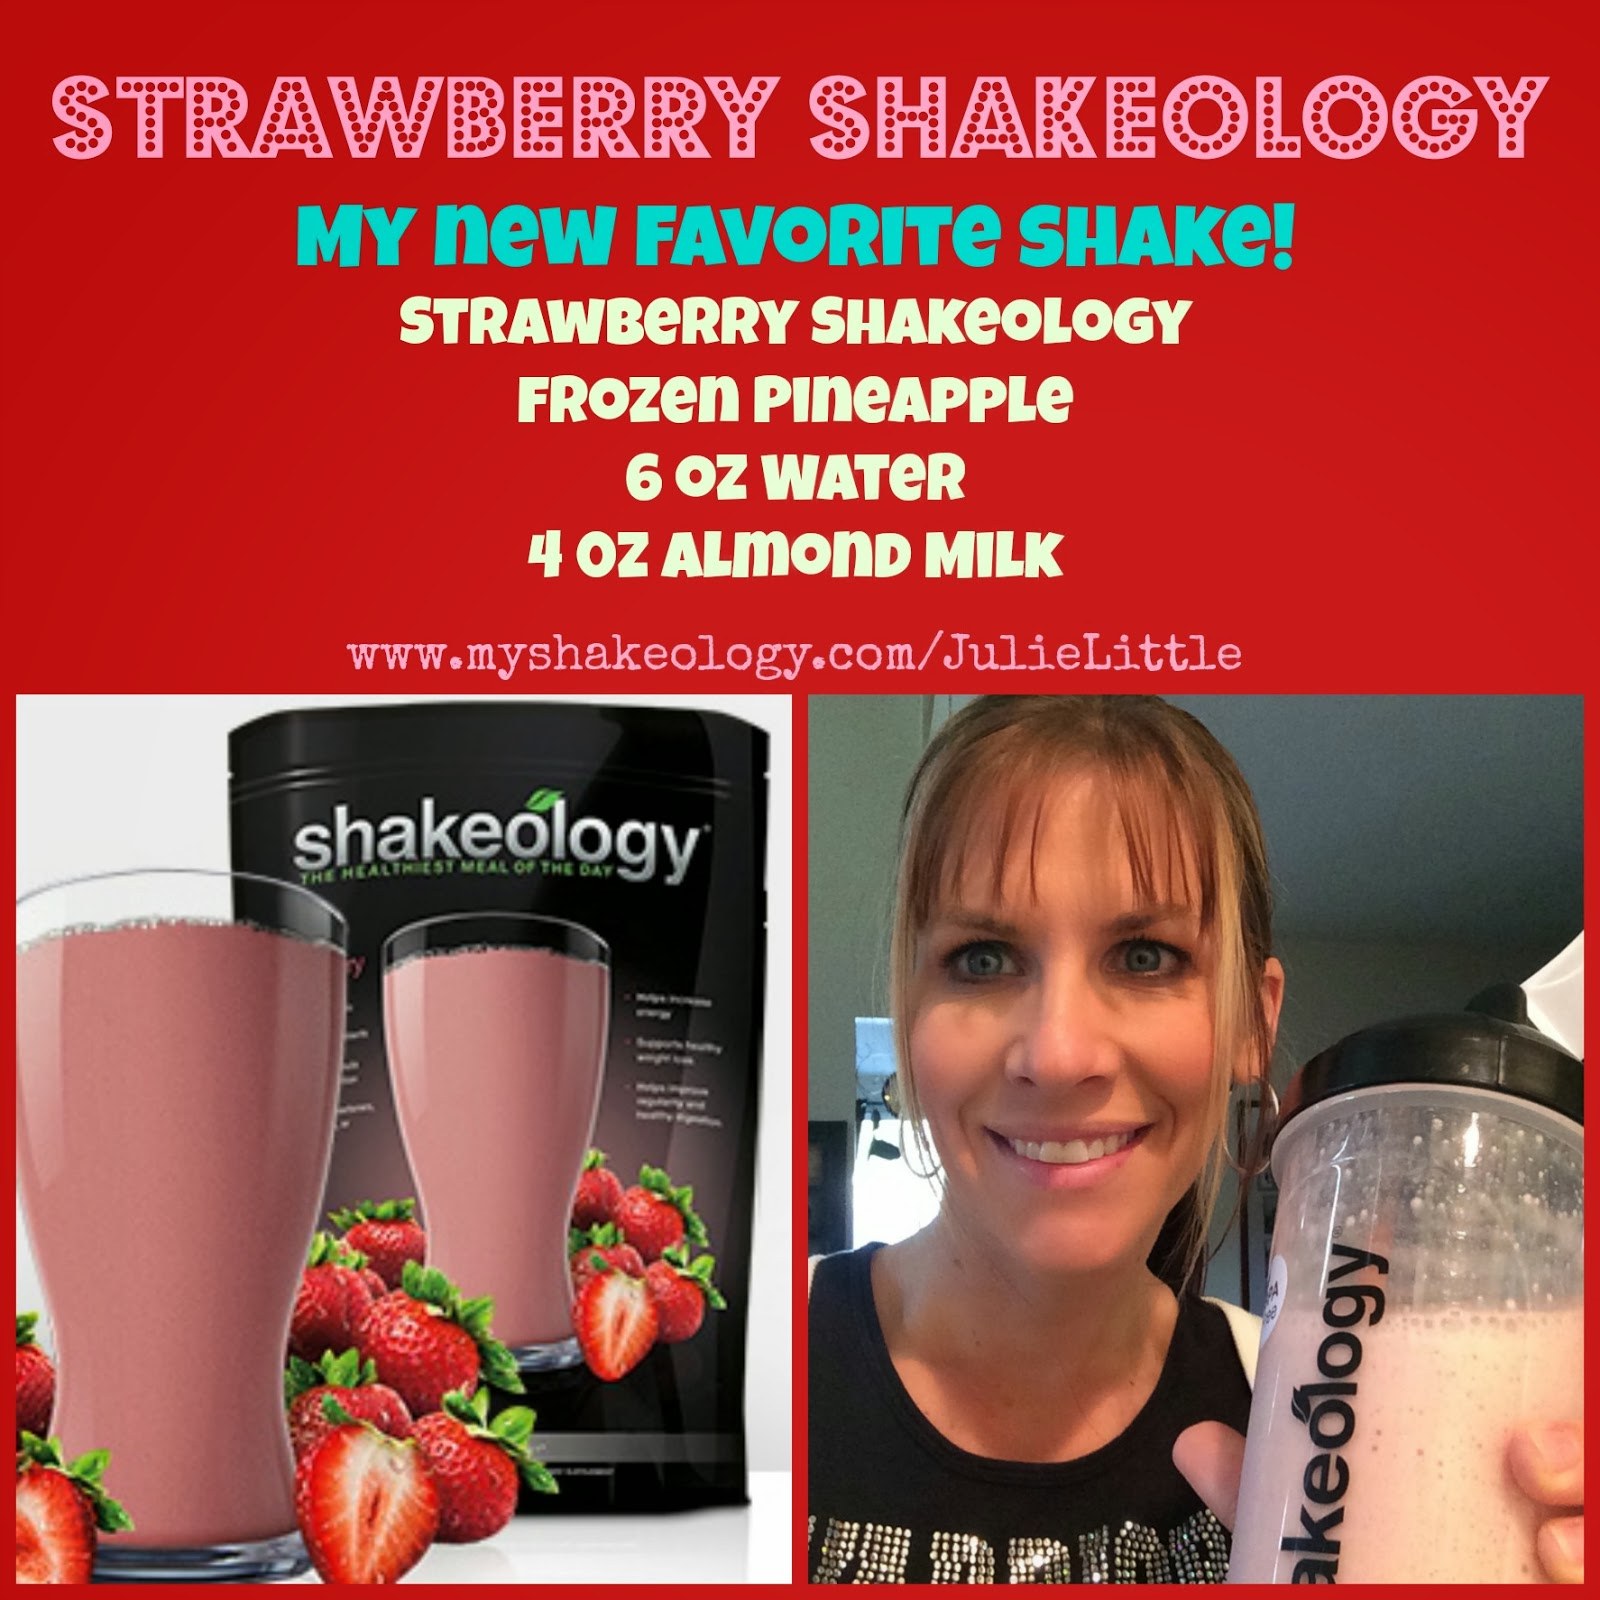 Strawberry Pineapple Shakeology, www.HealthyFitFocused.com